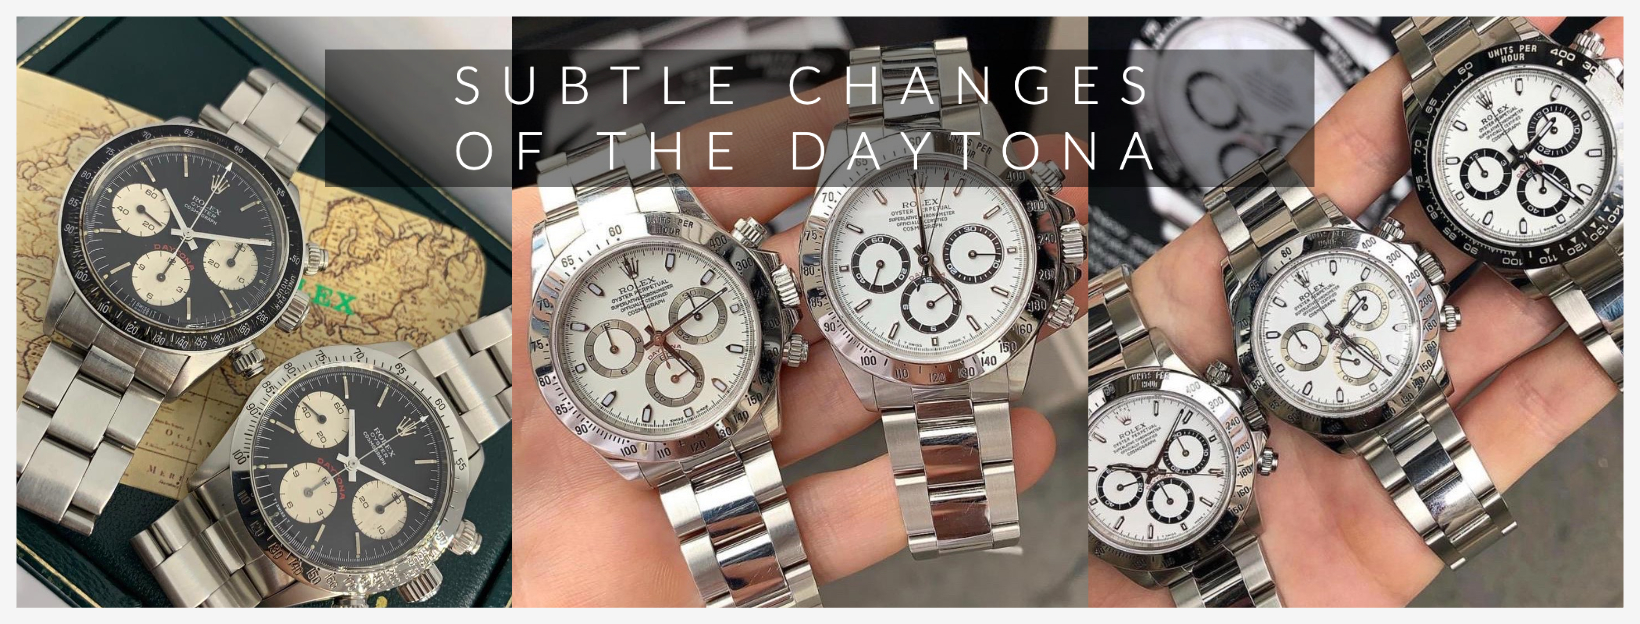 SUBTLE CHANGES TO THE DAYTONA 3